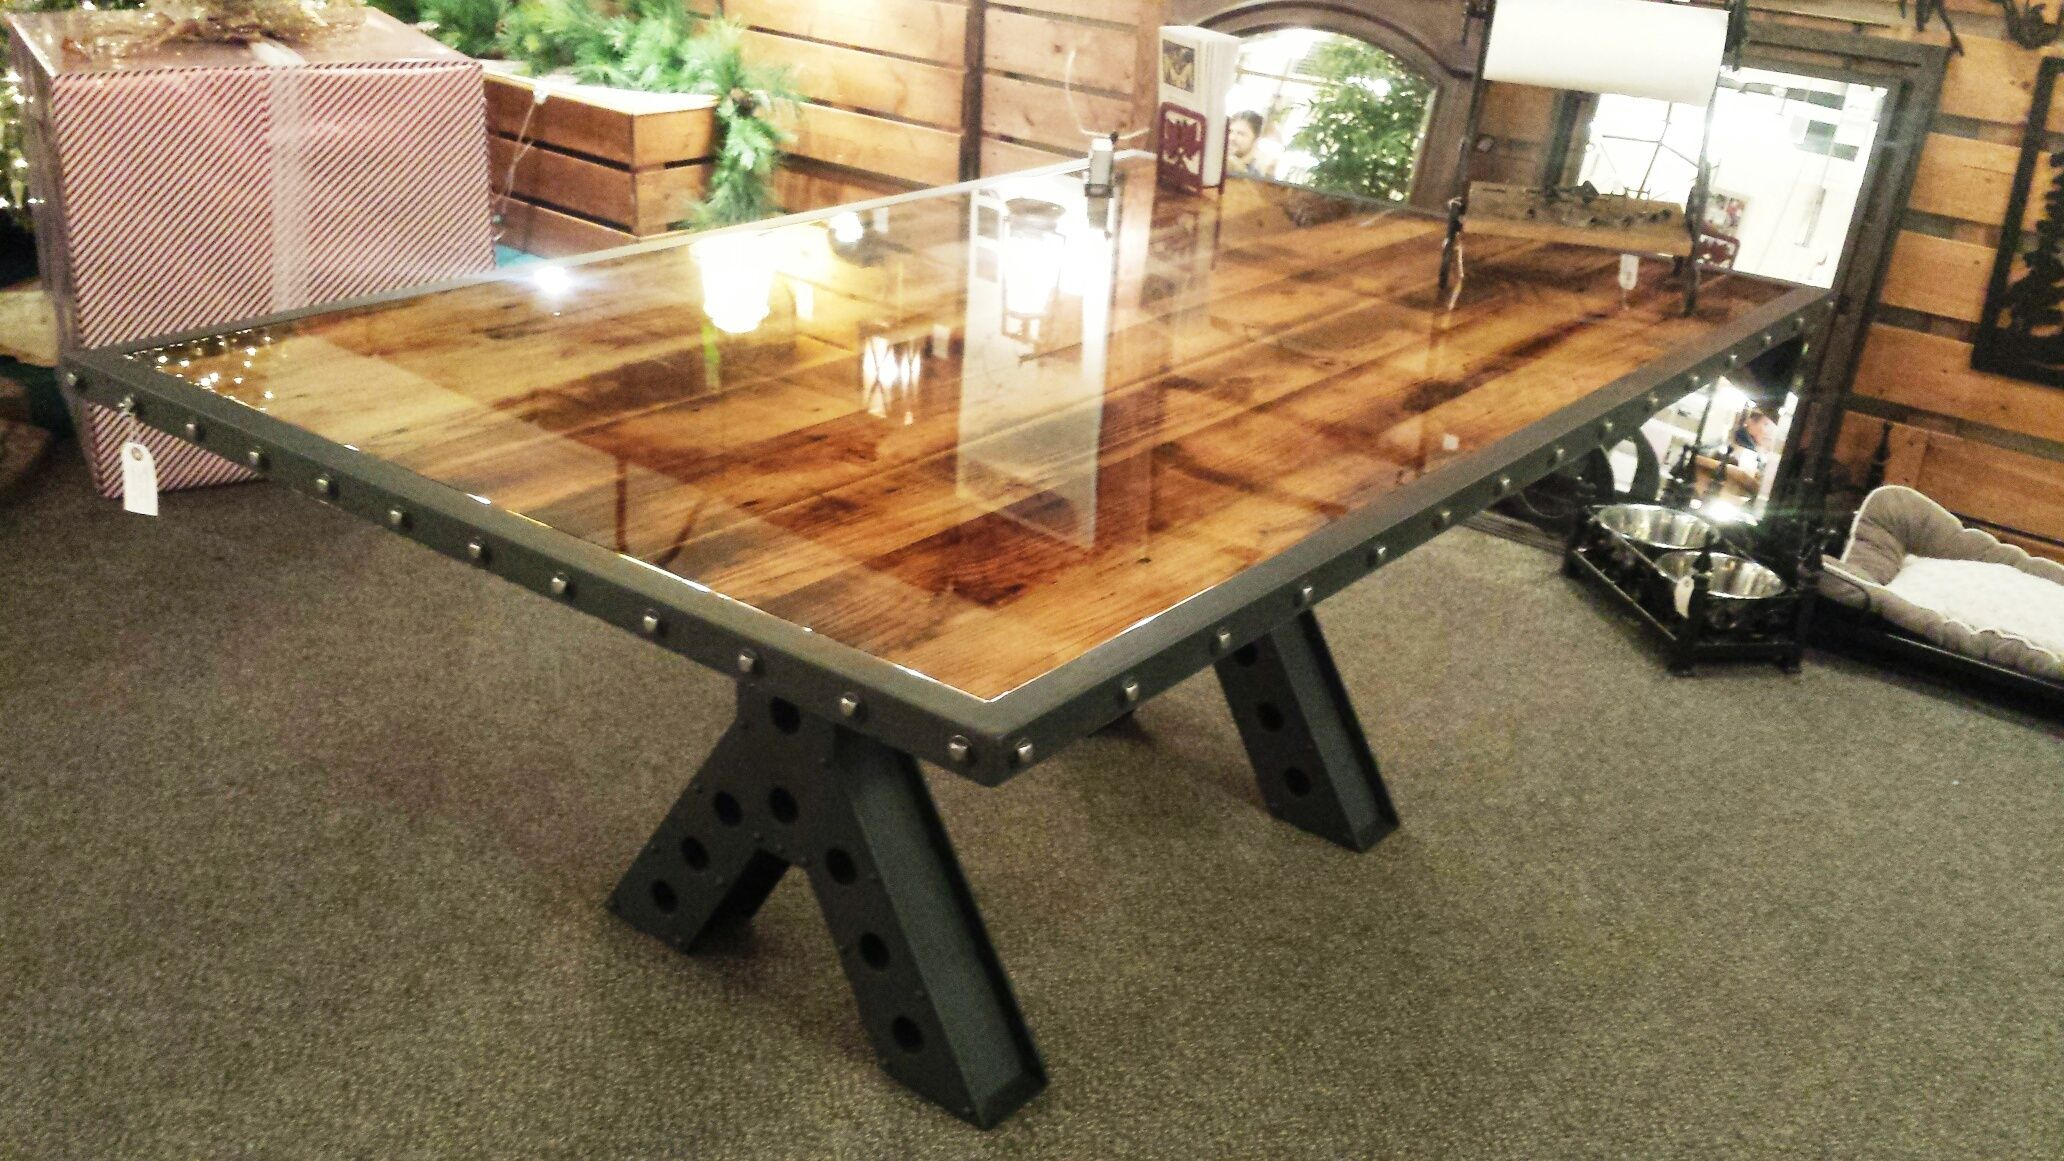 Buy A Handmade Modern Industrial Rustic 6 Foot Dining Table Conference Table Made Of Metal And